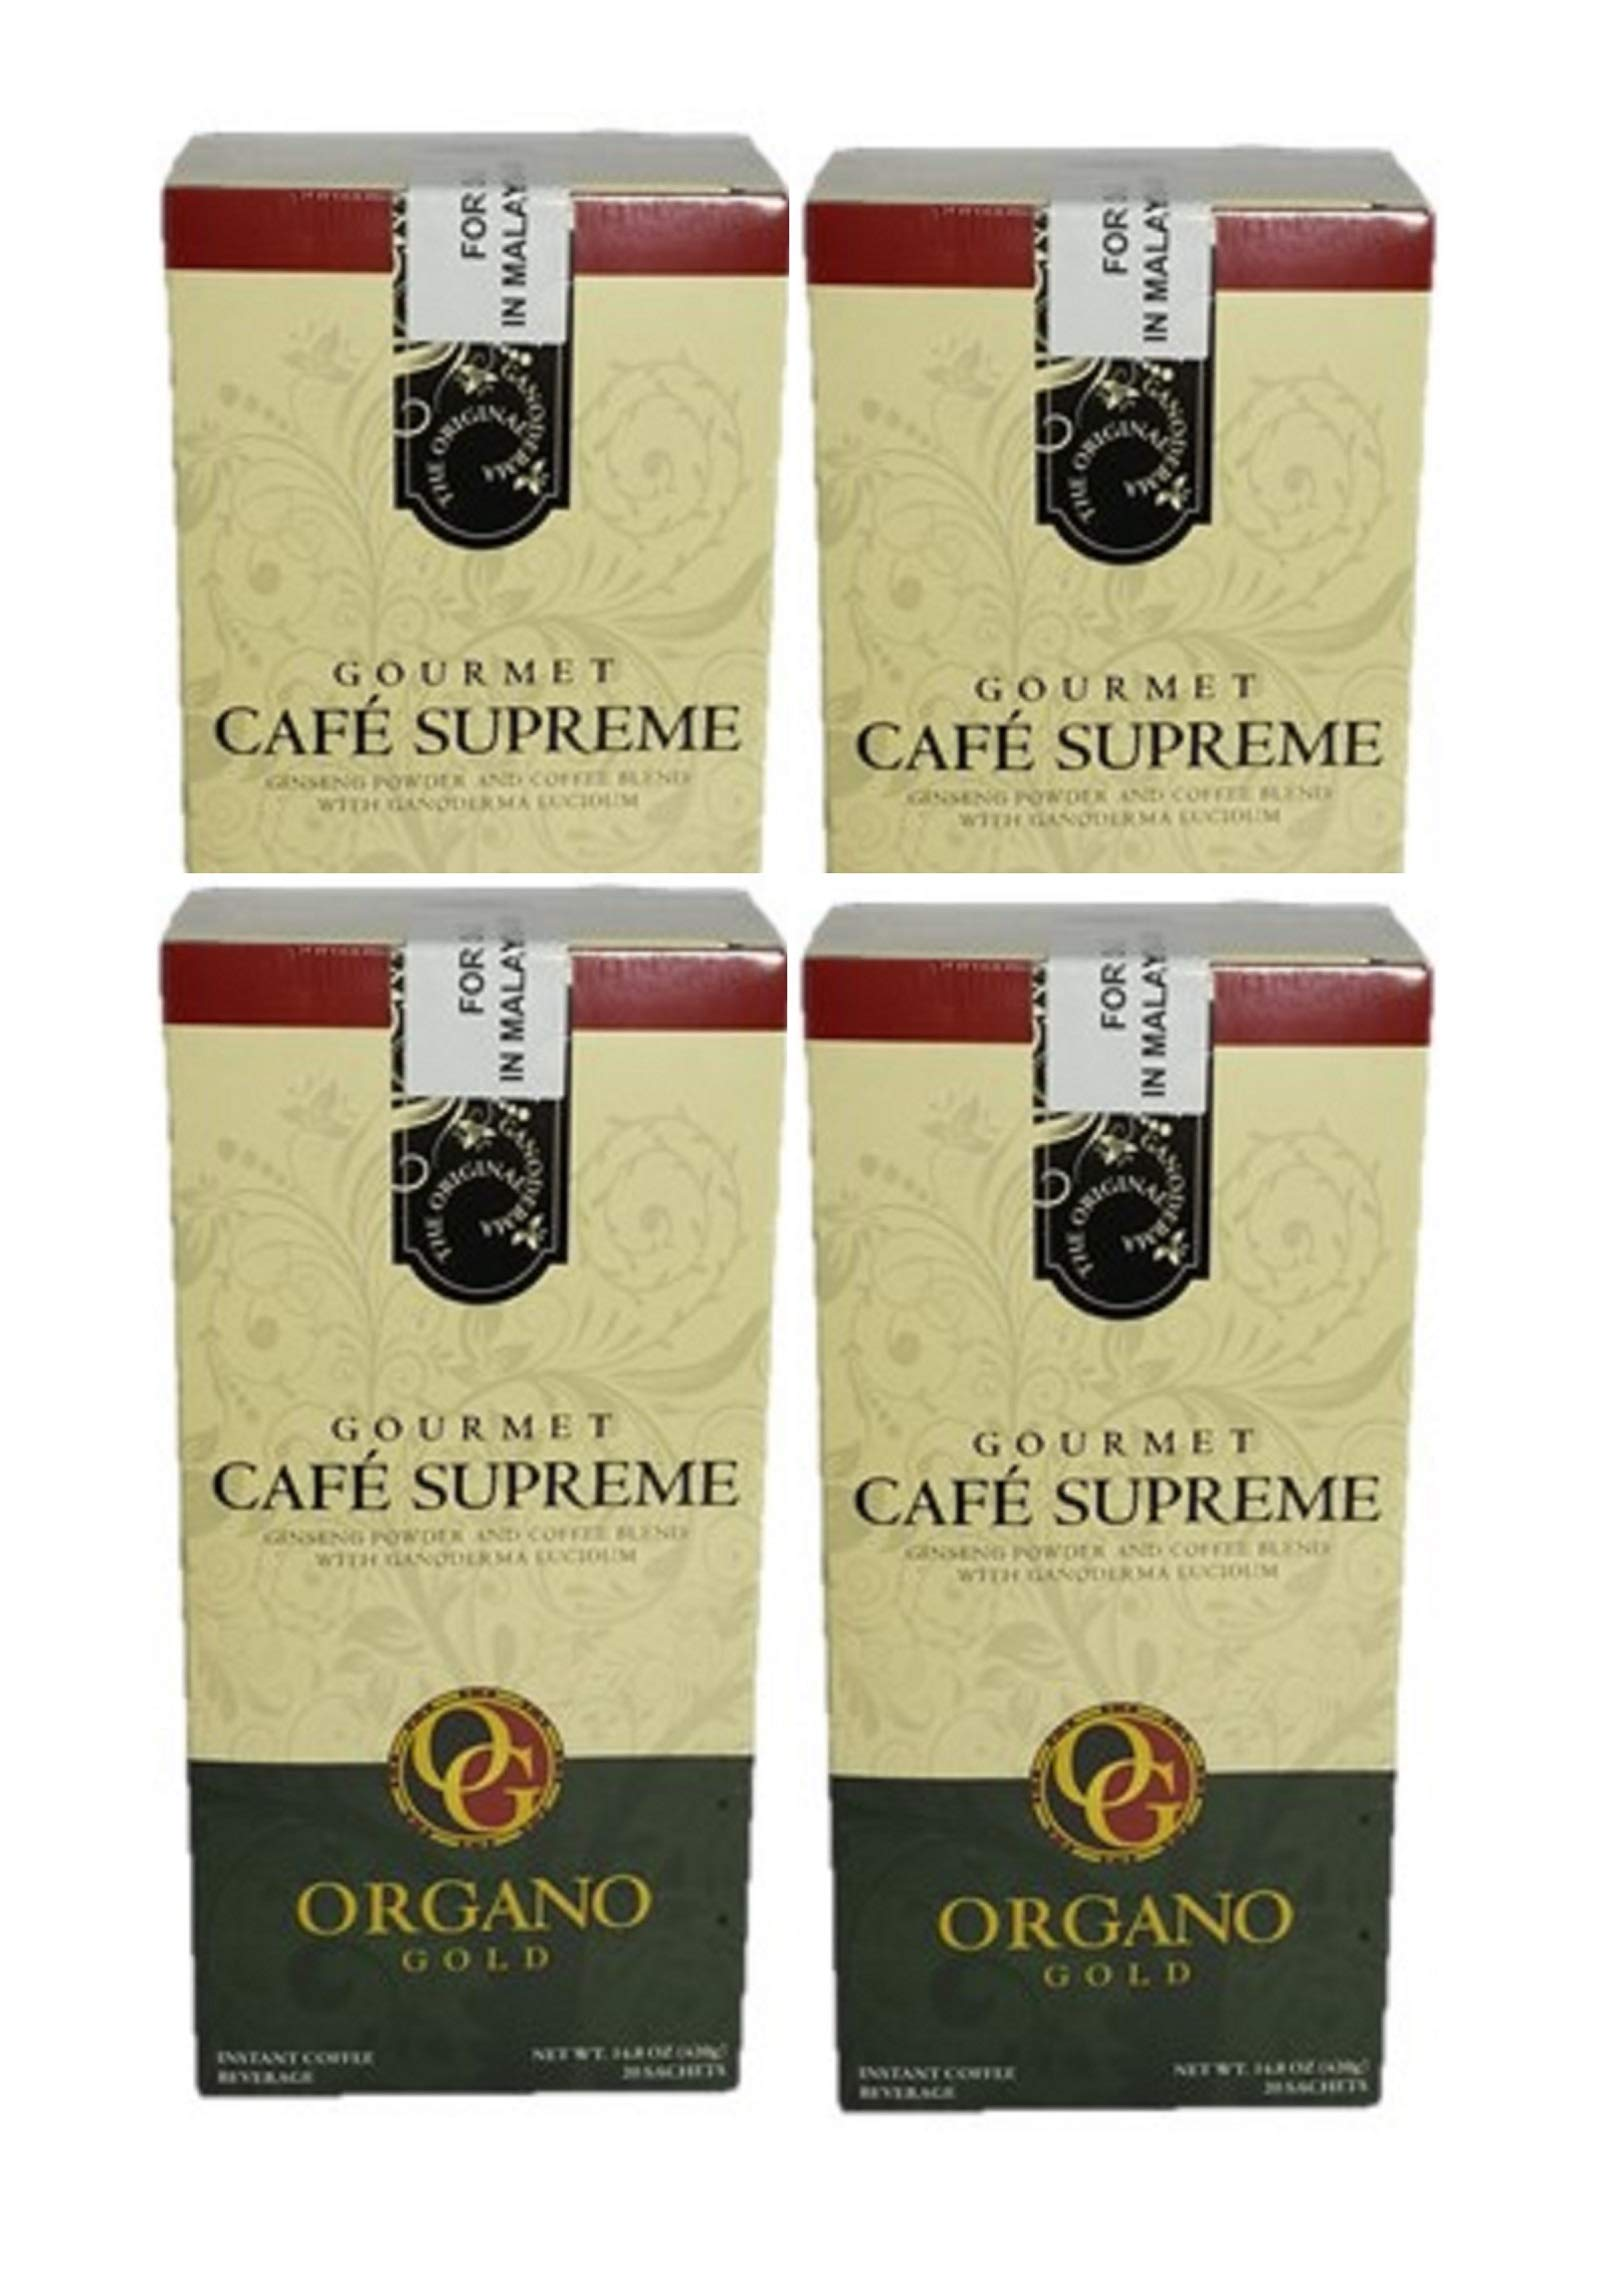 4 box of Organo Gold Cafe Supreme 100% Certified Ganoderma Extract Sealed